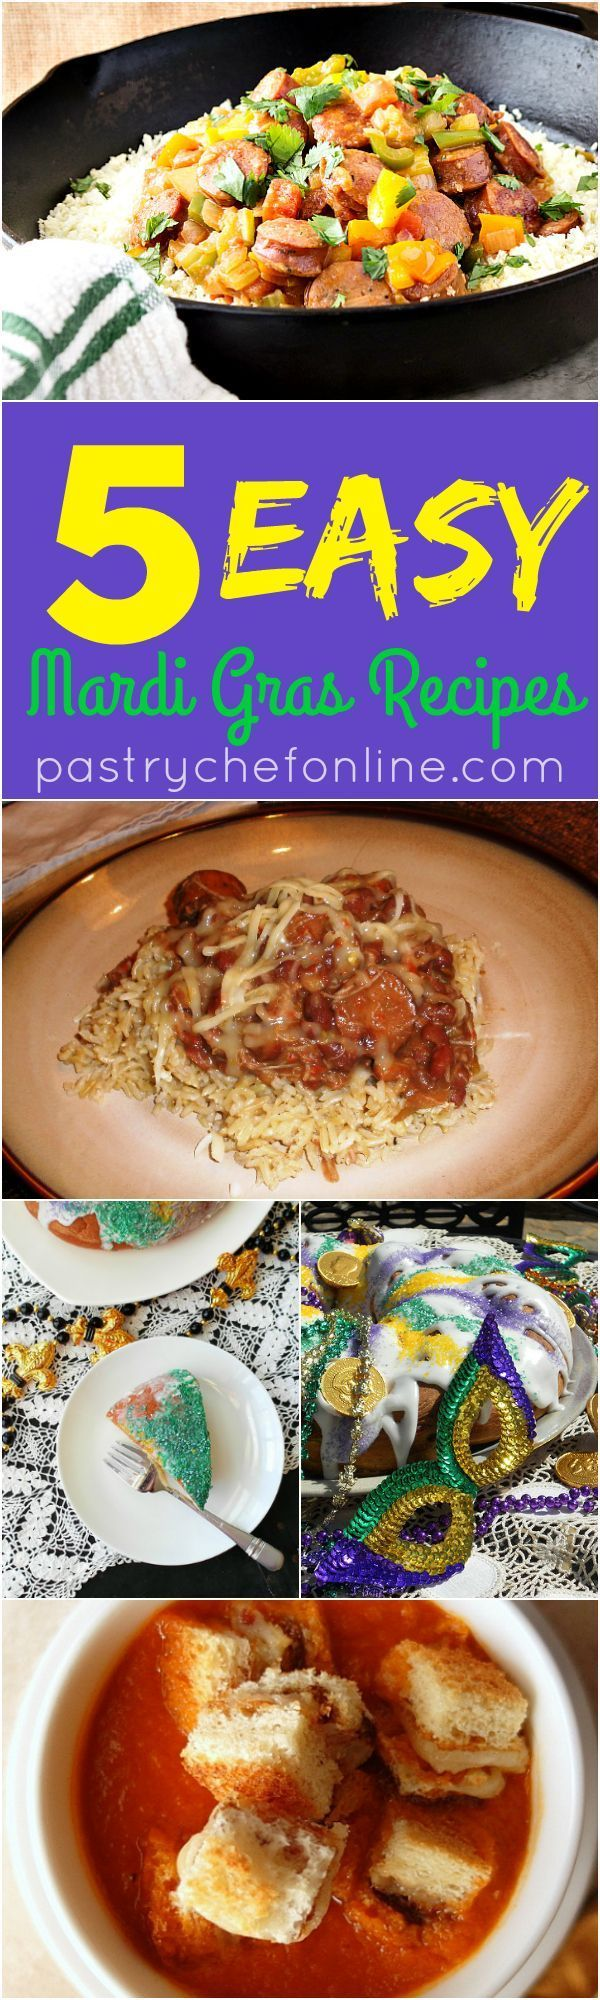 These easy Mardi Gras recipes will help you get the good times rolling this Fat Tuesday or any time you want some delicious Cajun flavors. Red beans and rice with chicken and andouille, Cajun spiced tomato soup with grilled cheese and bacon croutons, low-carb creamy Cajun sausage with cauliflower rice and two recipes for King Cake! Enjoy!   pastrychefonline.com